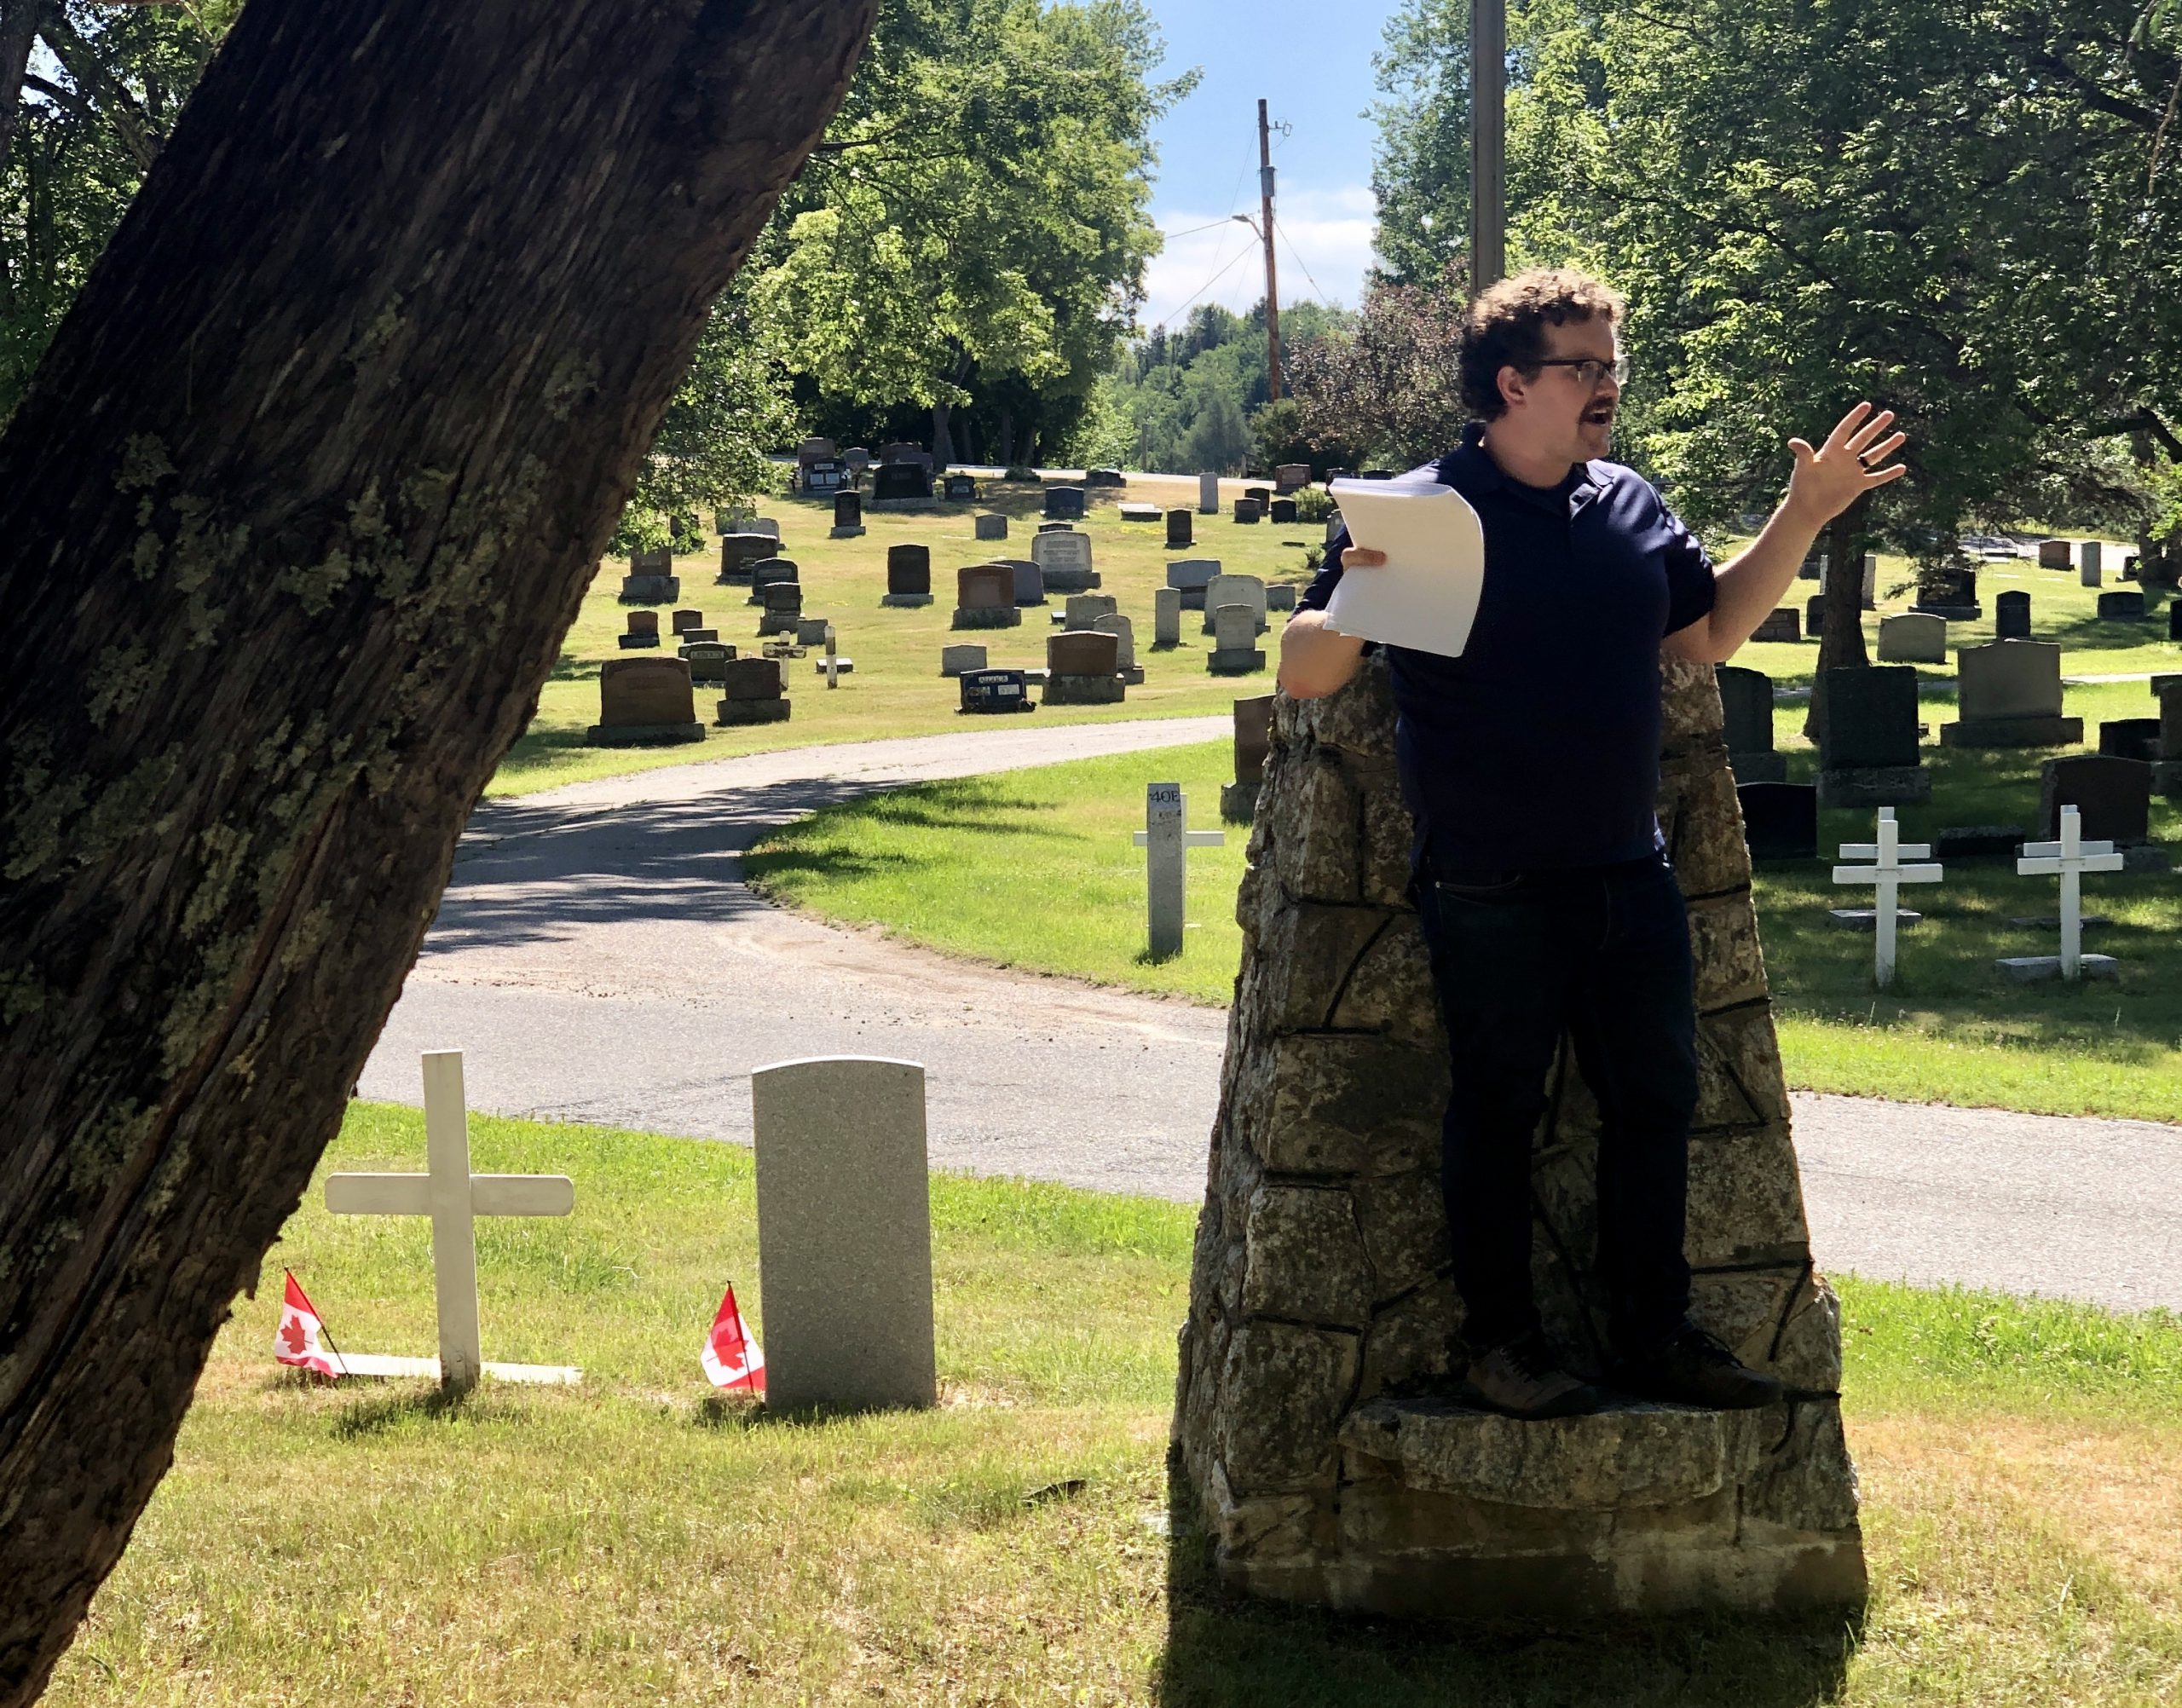 Photograph of Braden Murray, Museum Educator for the Lake of the Woods Museum, standing in the Lake of the Woods Cemetery giving a tour with animated arms in the air.